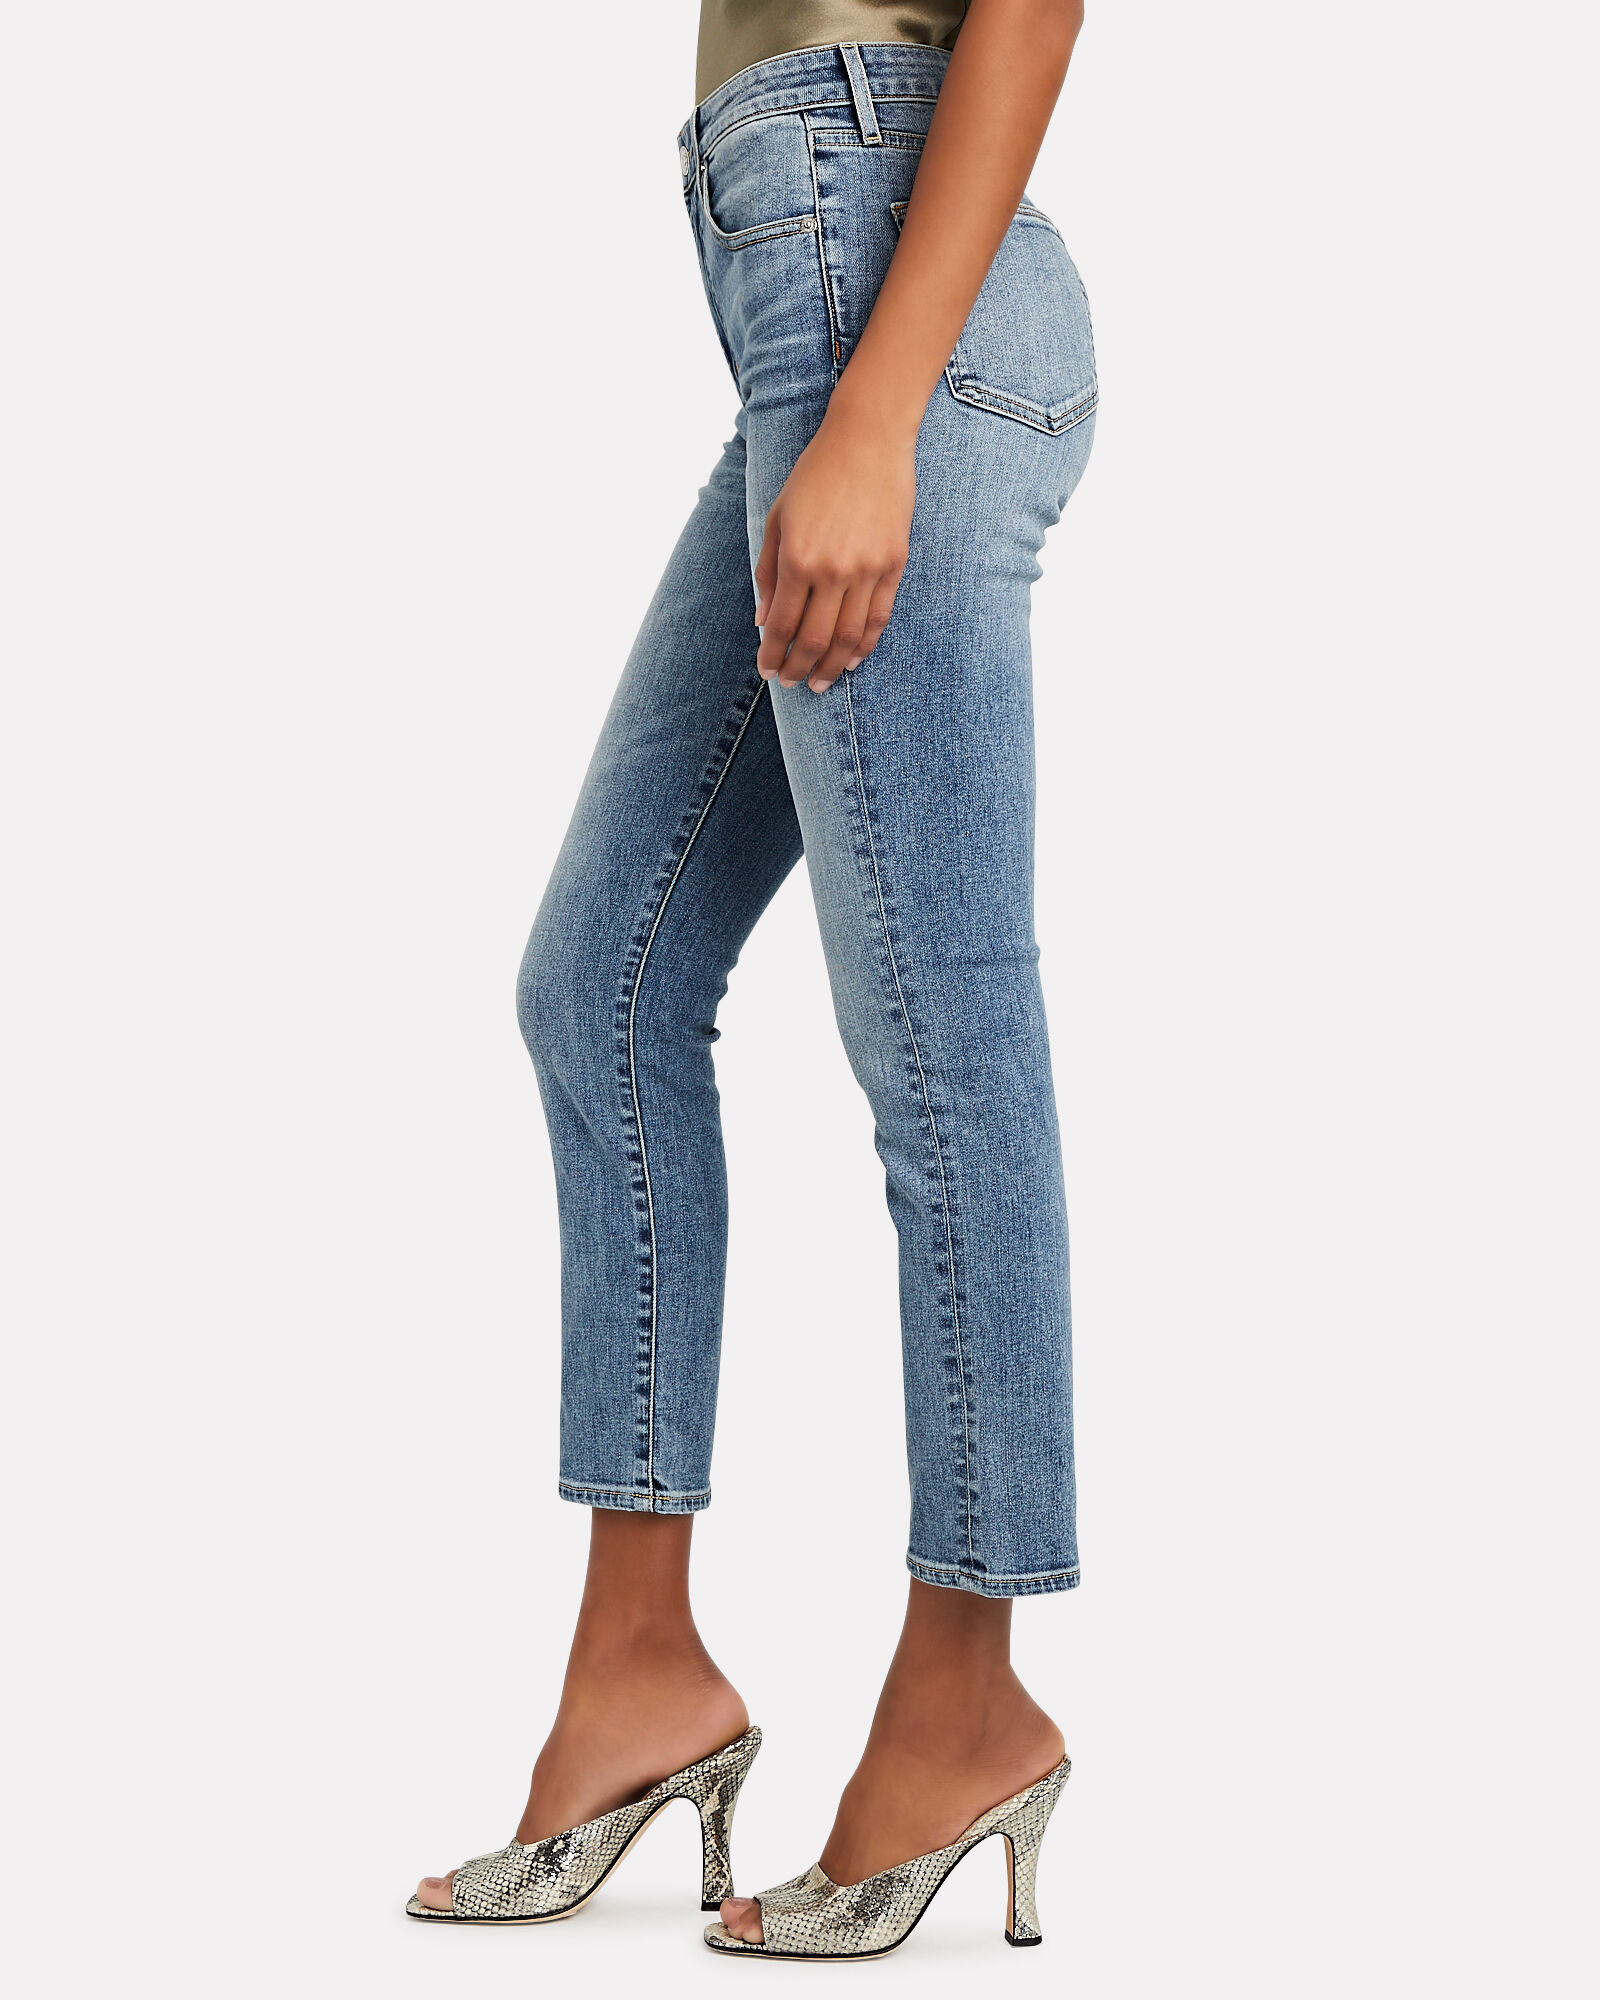 Lou Lou High-Rise Jeans, BLUE SKIES, hi-res